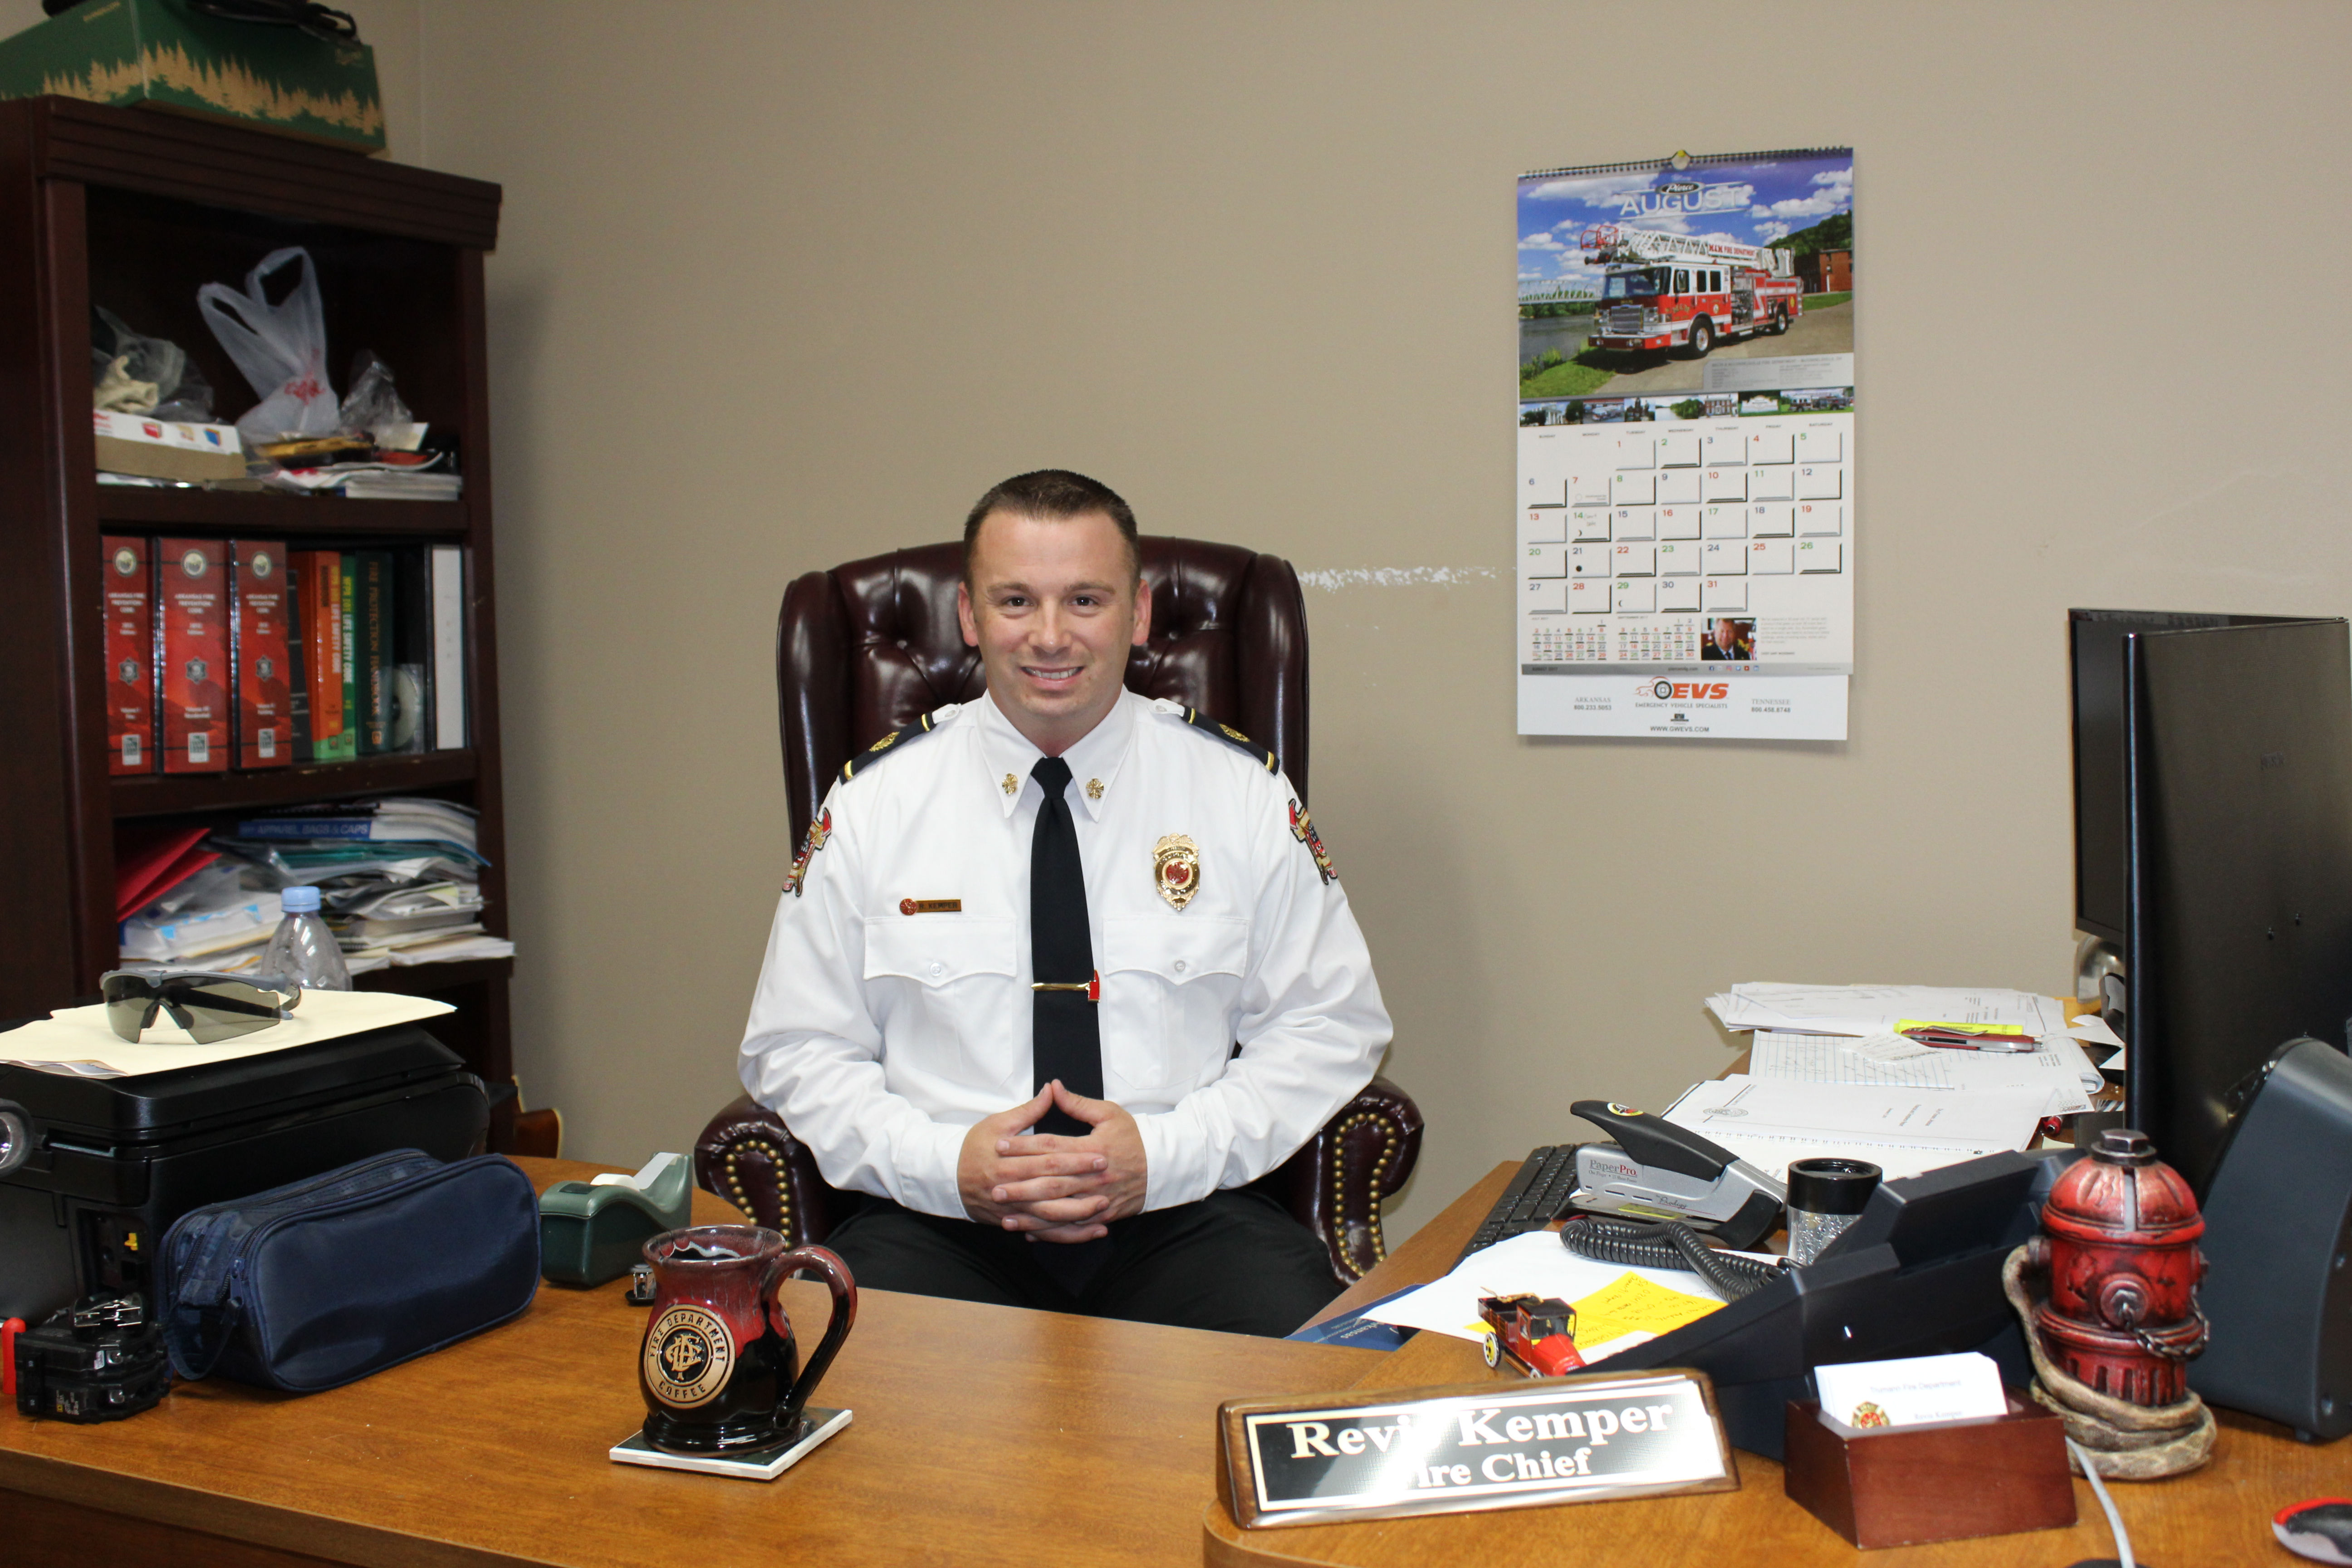 Trumann Fire Chief Revis Kemper sitting at his desk